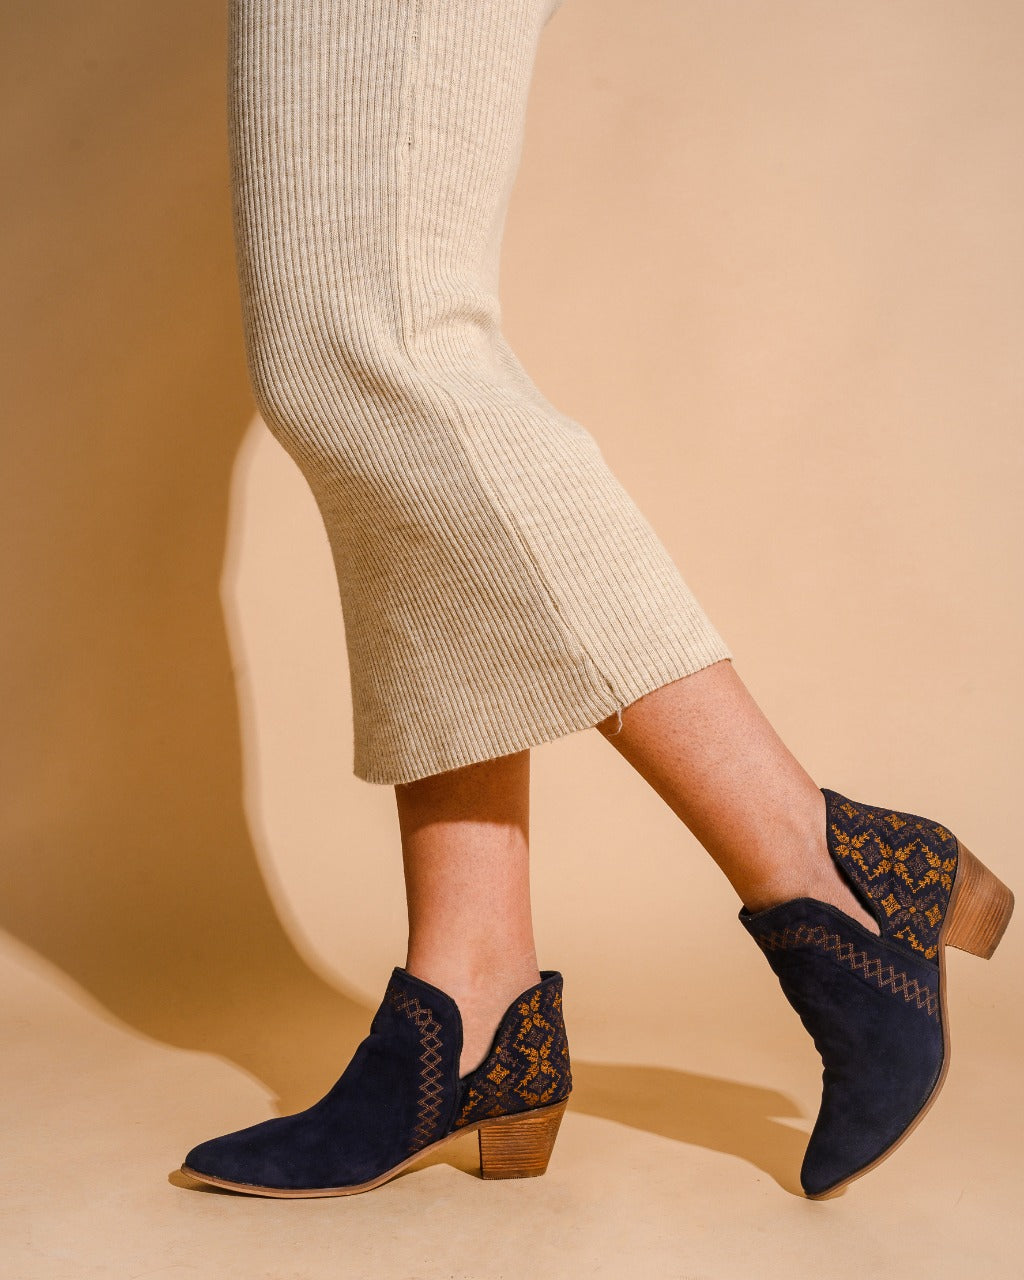 Ankle Boots  Crochet Navy Blue